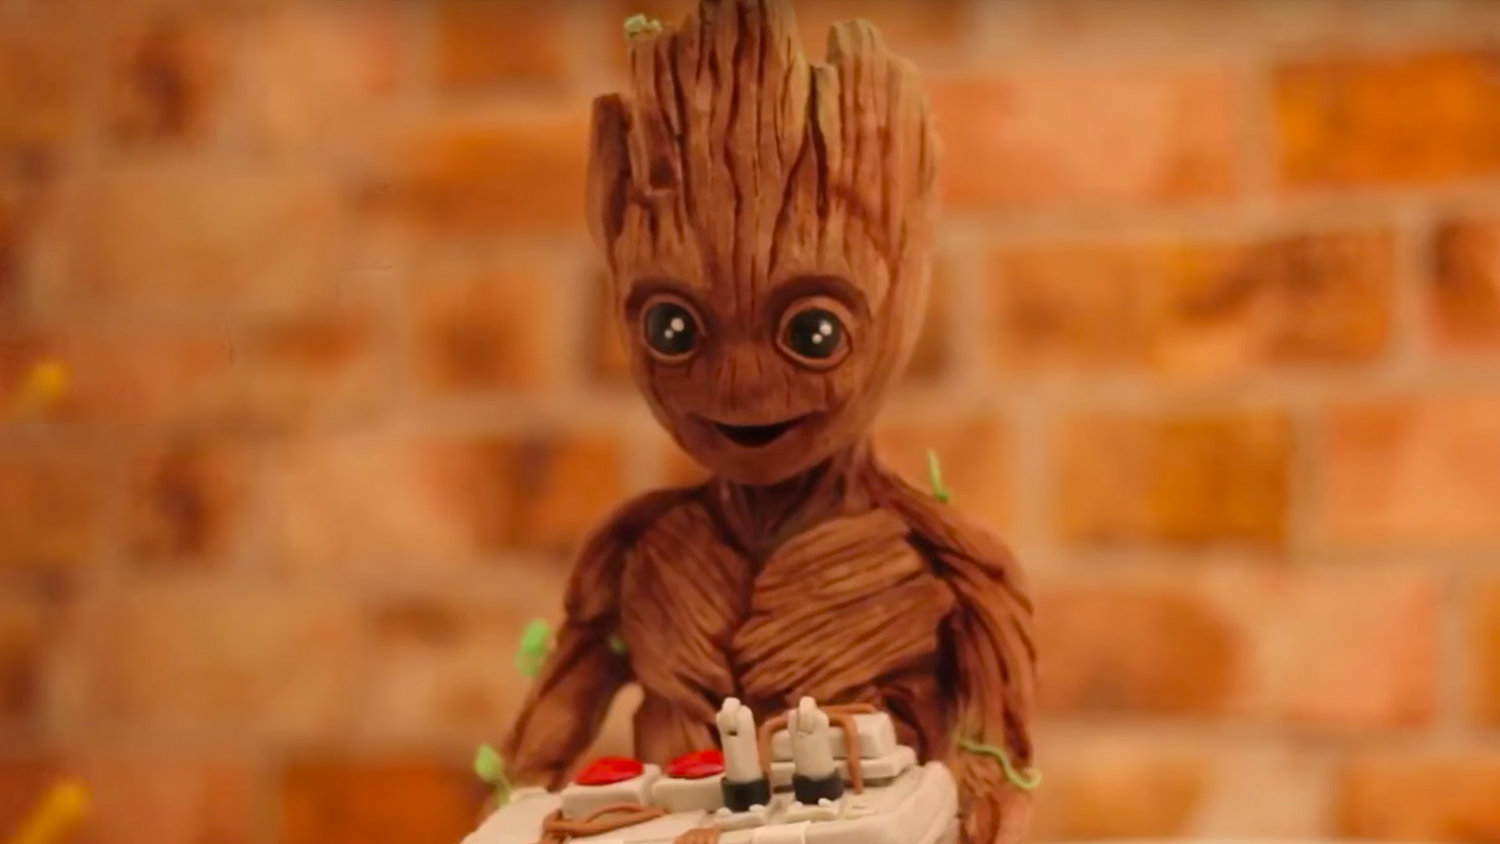 Check Out This Ridiculously Detailed Baby Groot Chocolate Sculpture